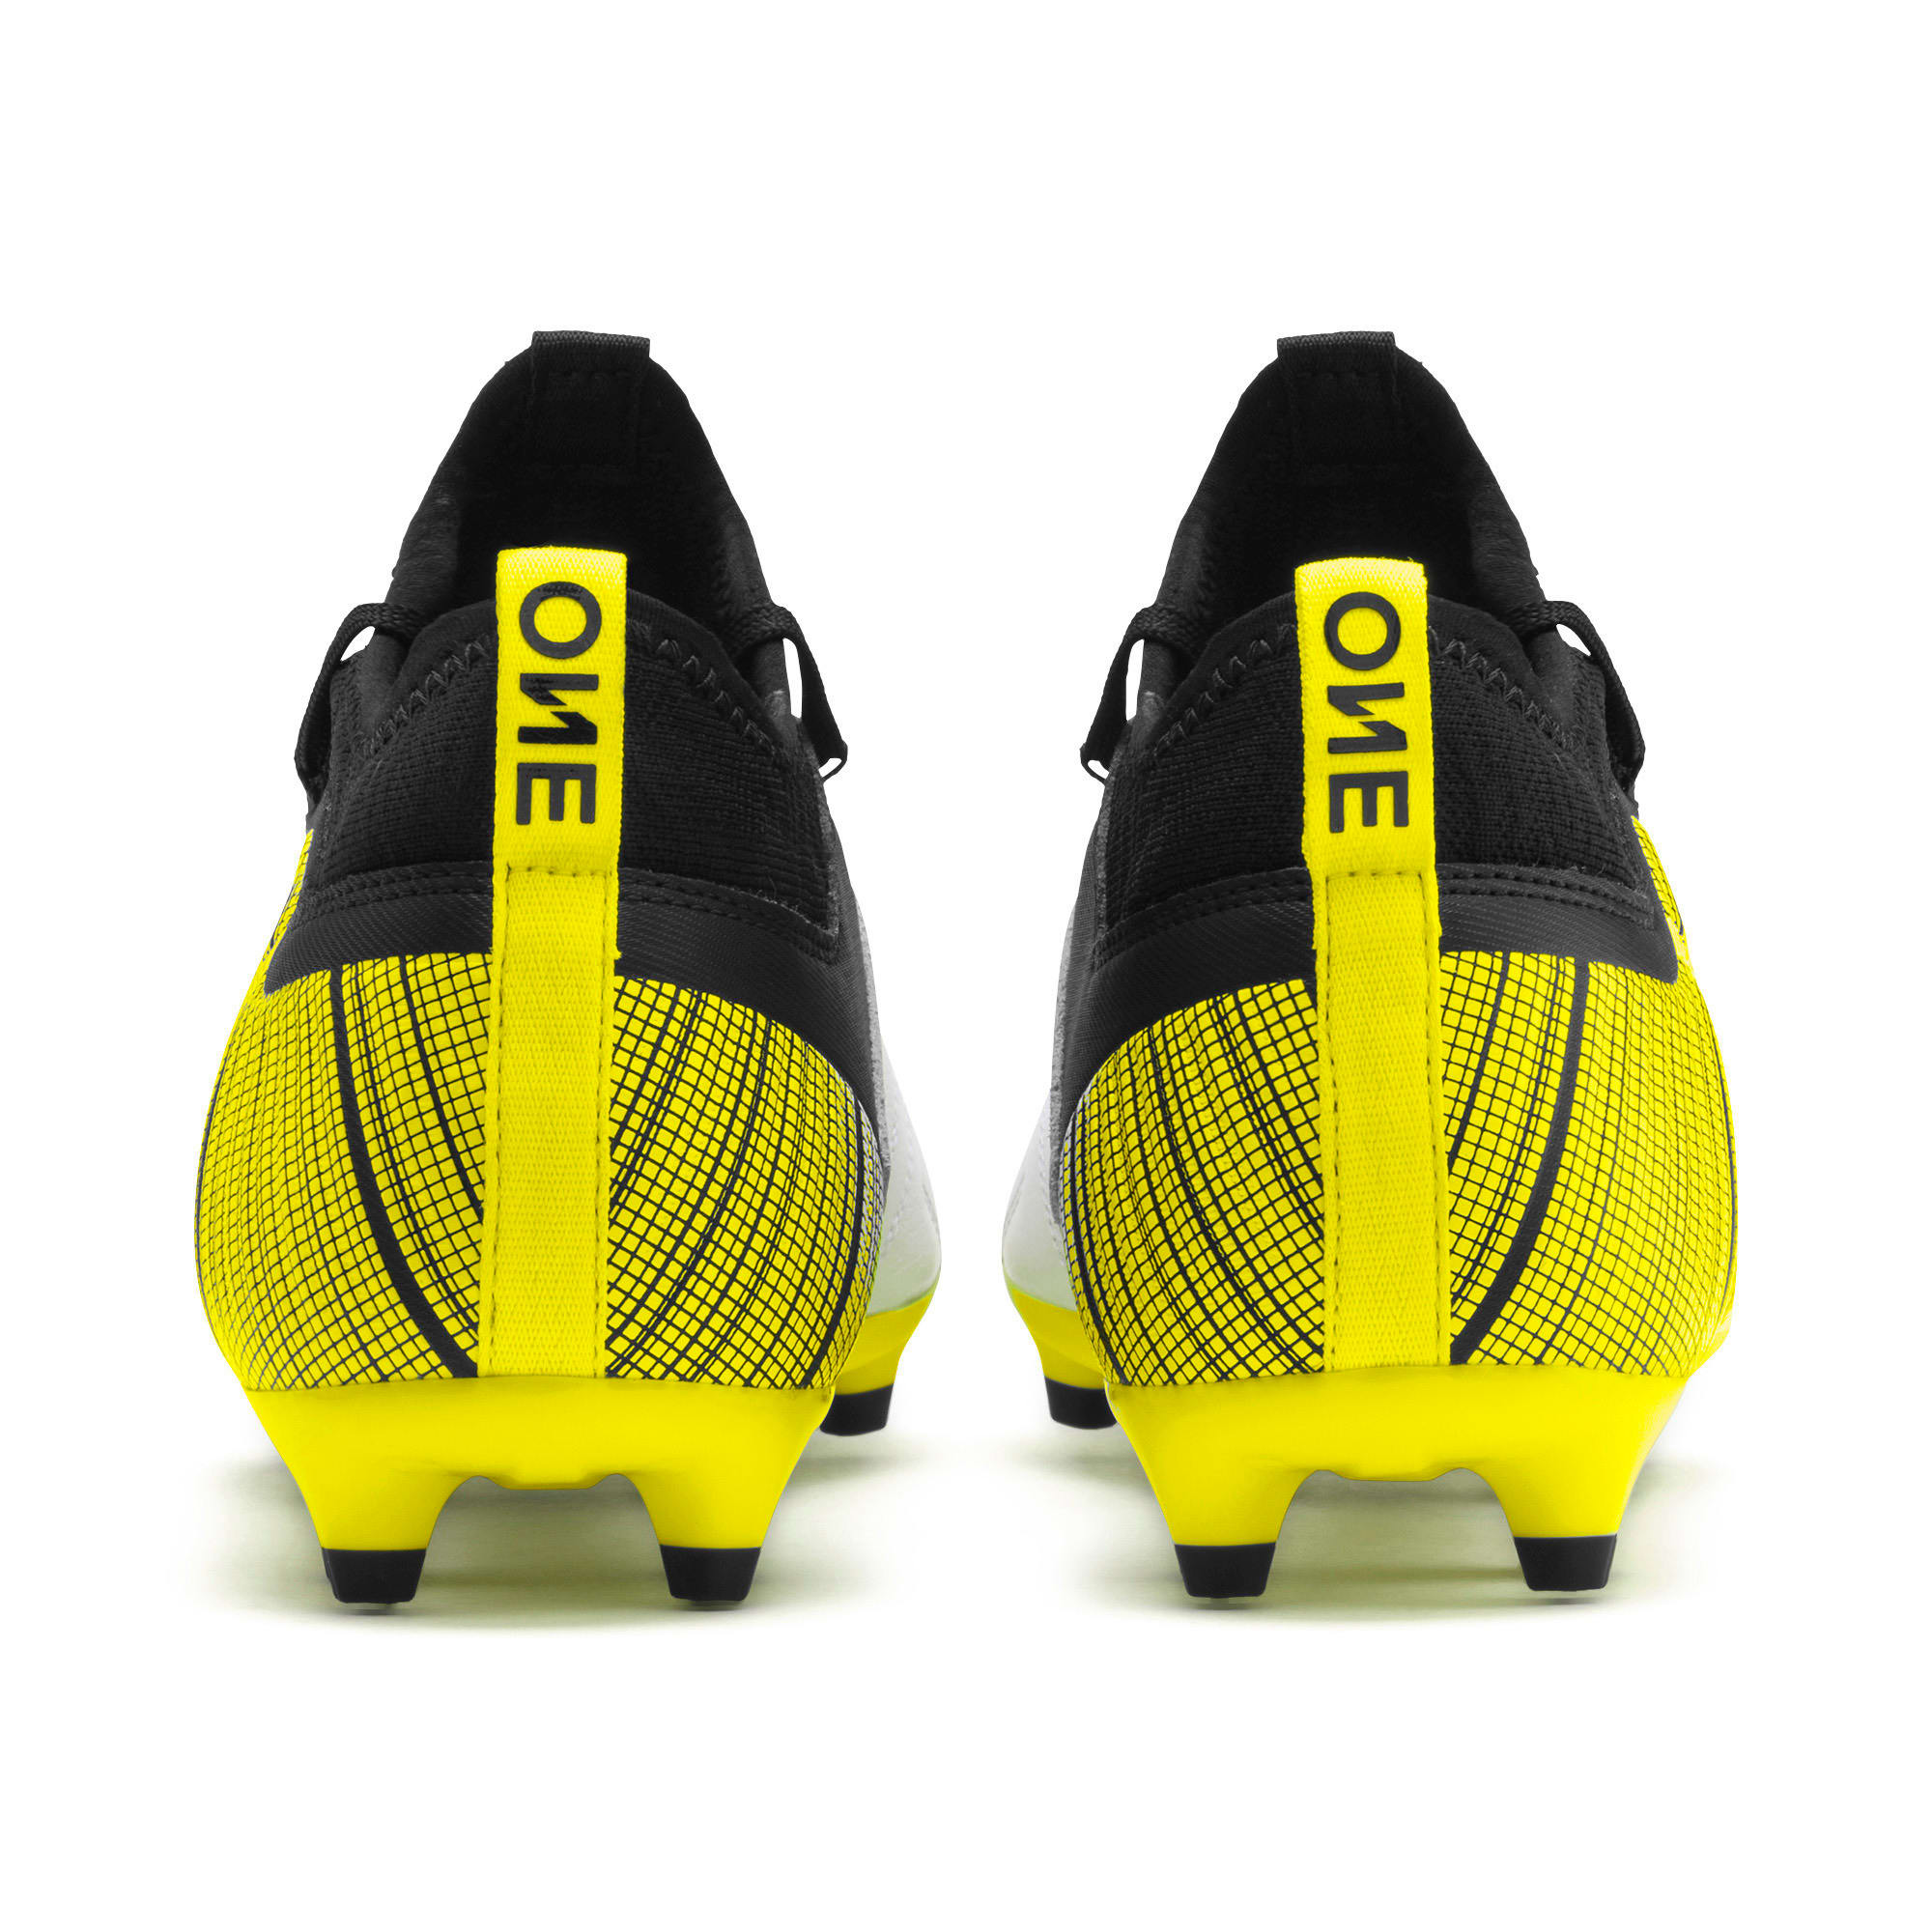 Thumbnail 4 of PUMA ONE 5.3 FG/AG voetbalschoenen voor heren, White-Black-Yellow Alert, medium